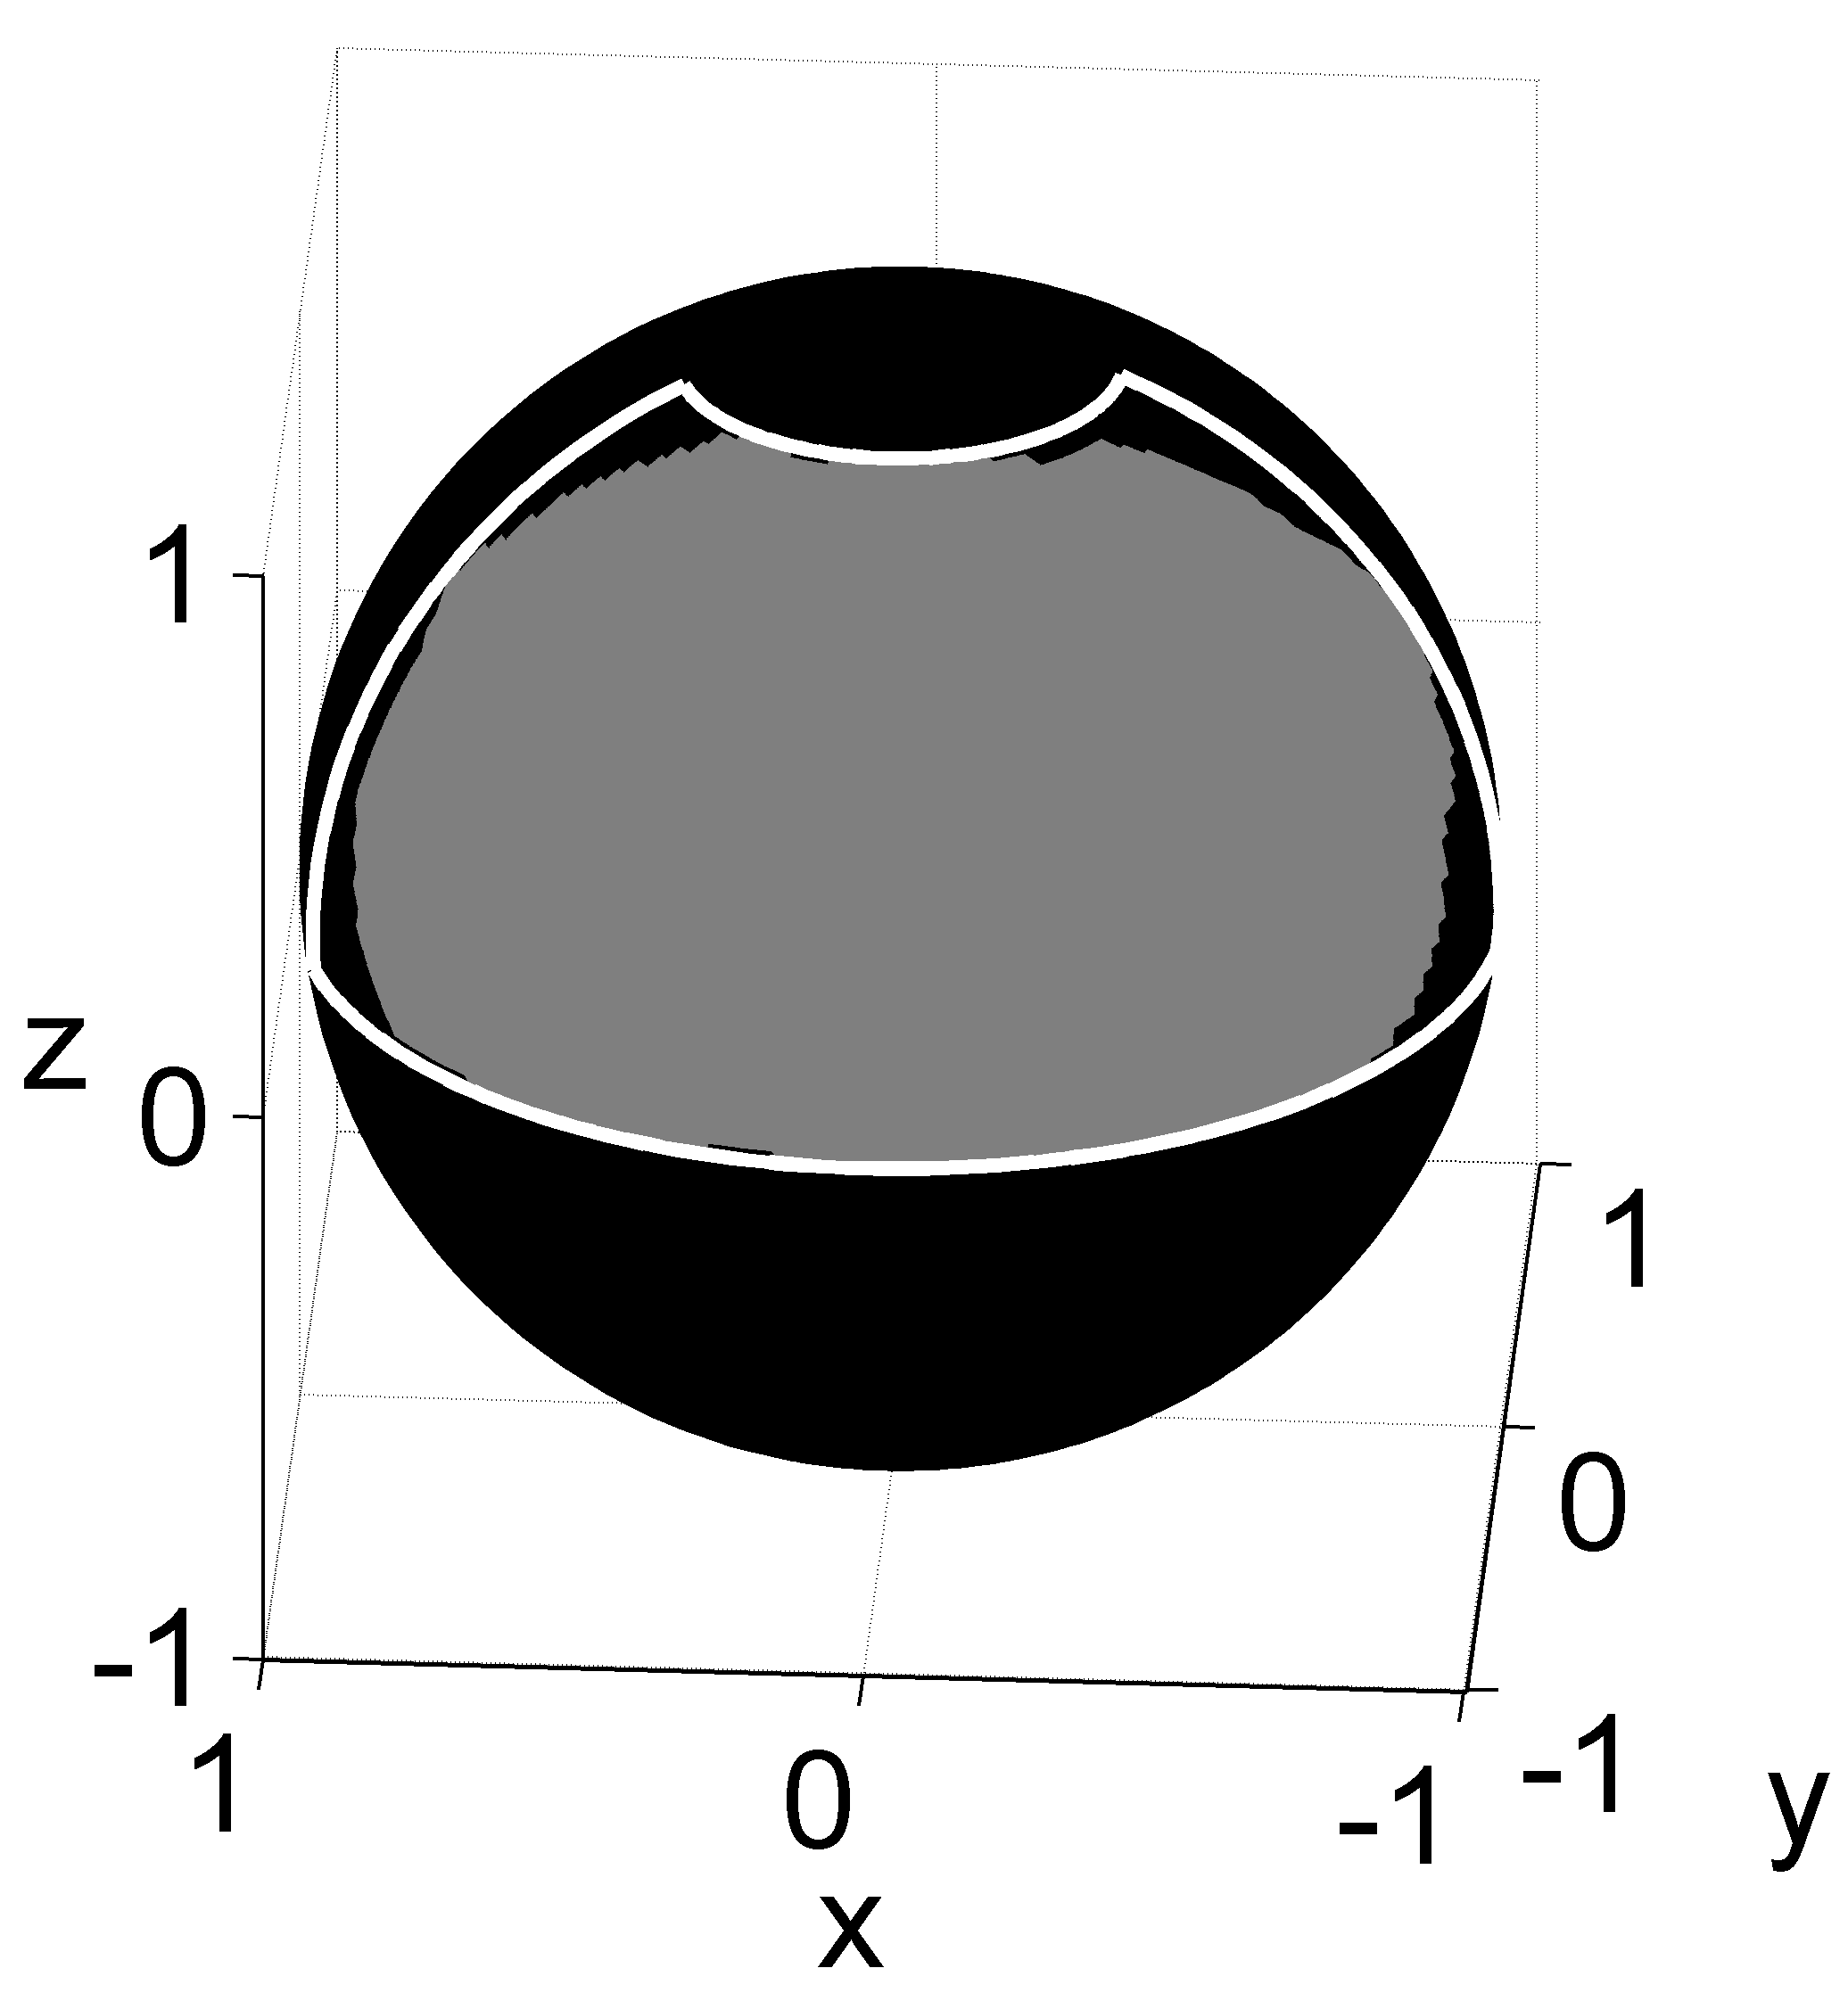 The limited colatitude-longitude region (outline shown in white) approximating the SDSS DR7 quasar mask on the sphere (shown in grey).